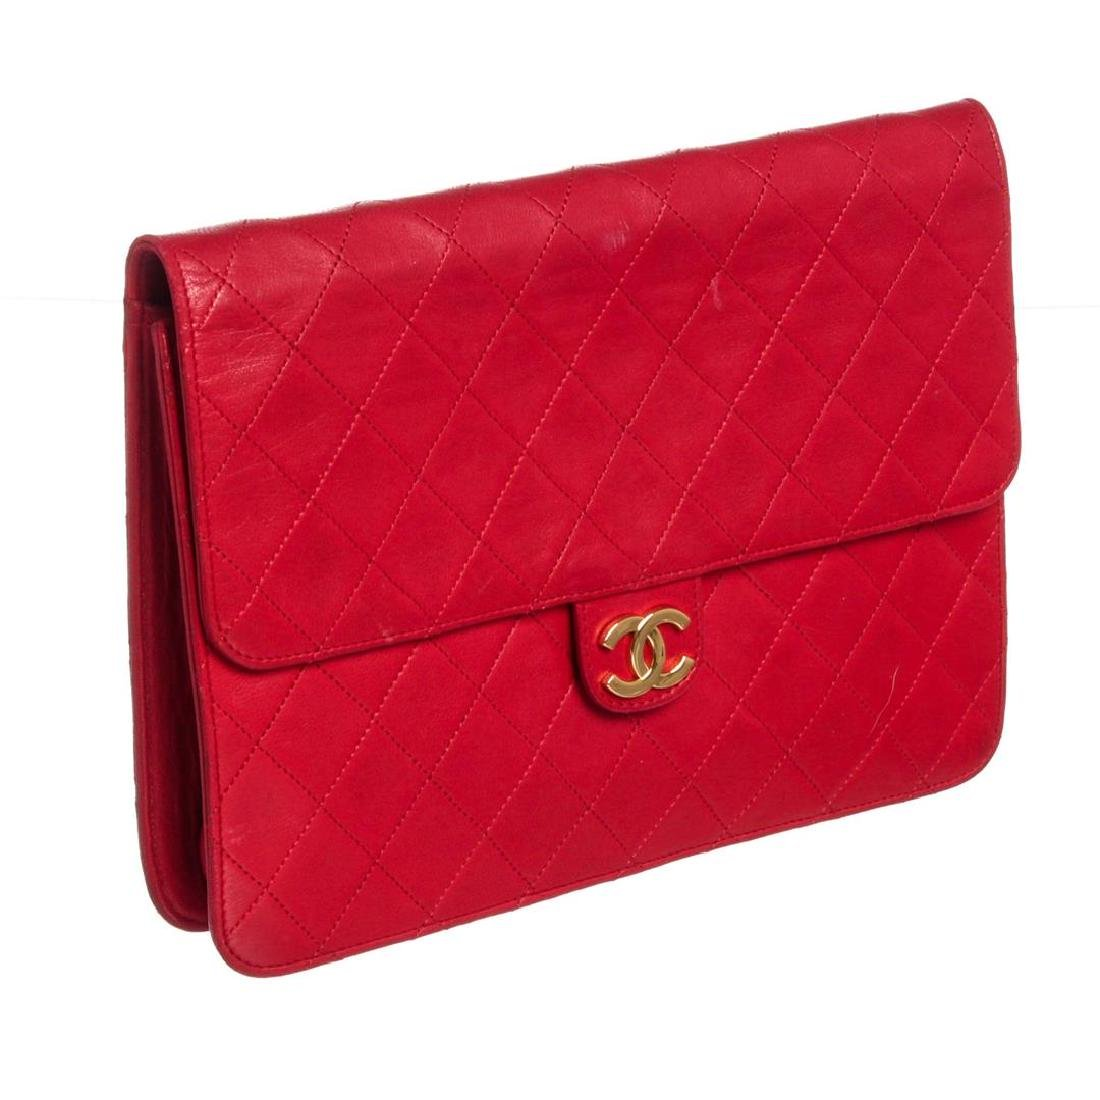 Chanel Red Quilted Lambskin Leather Flap Shoulder - 2